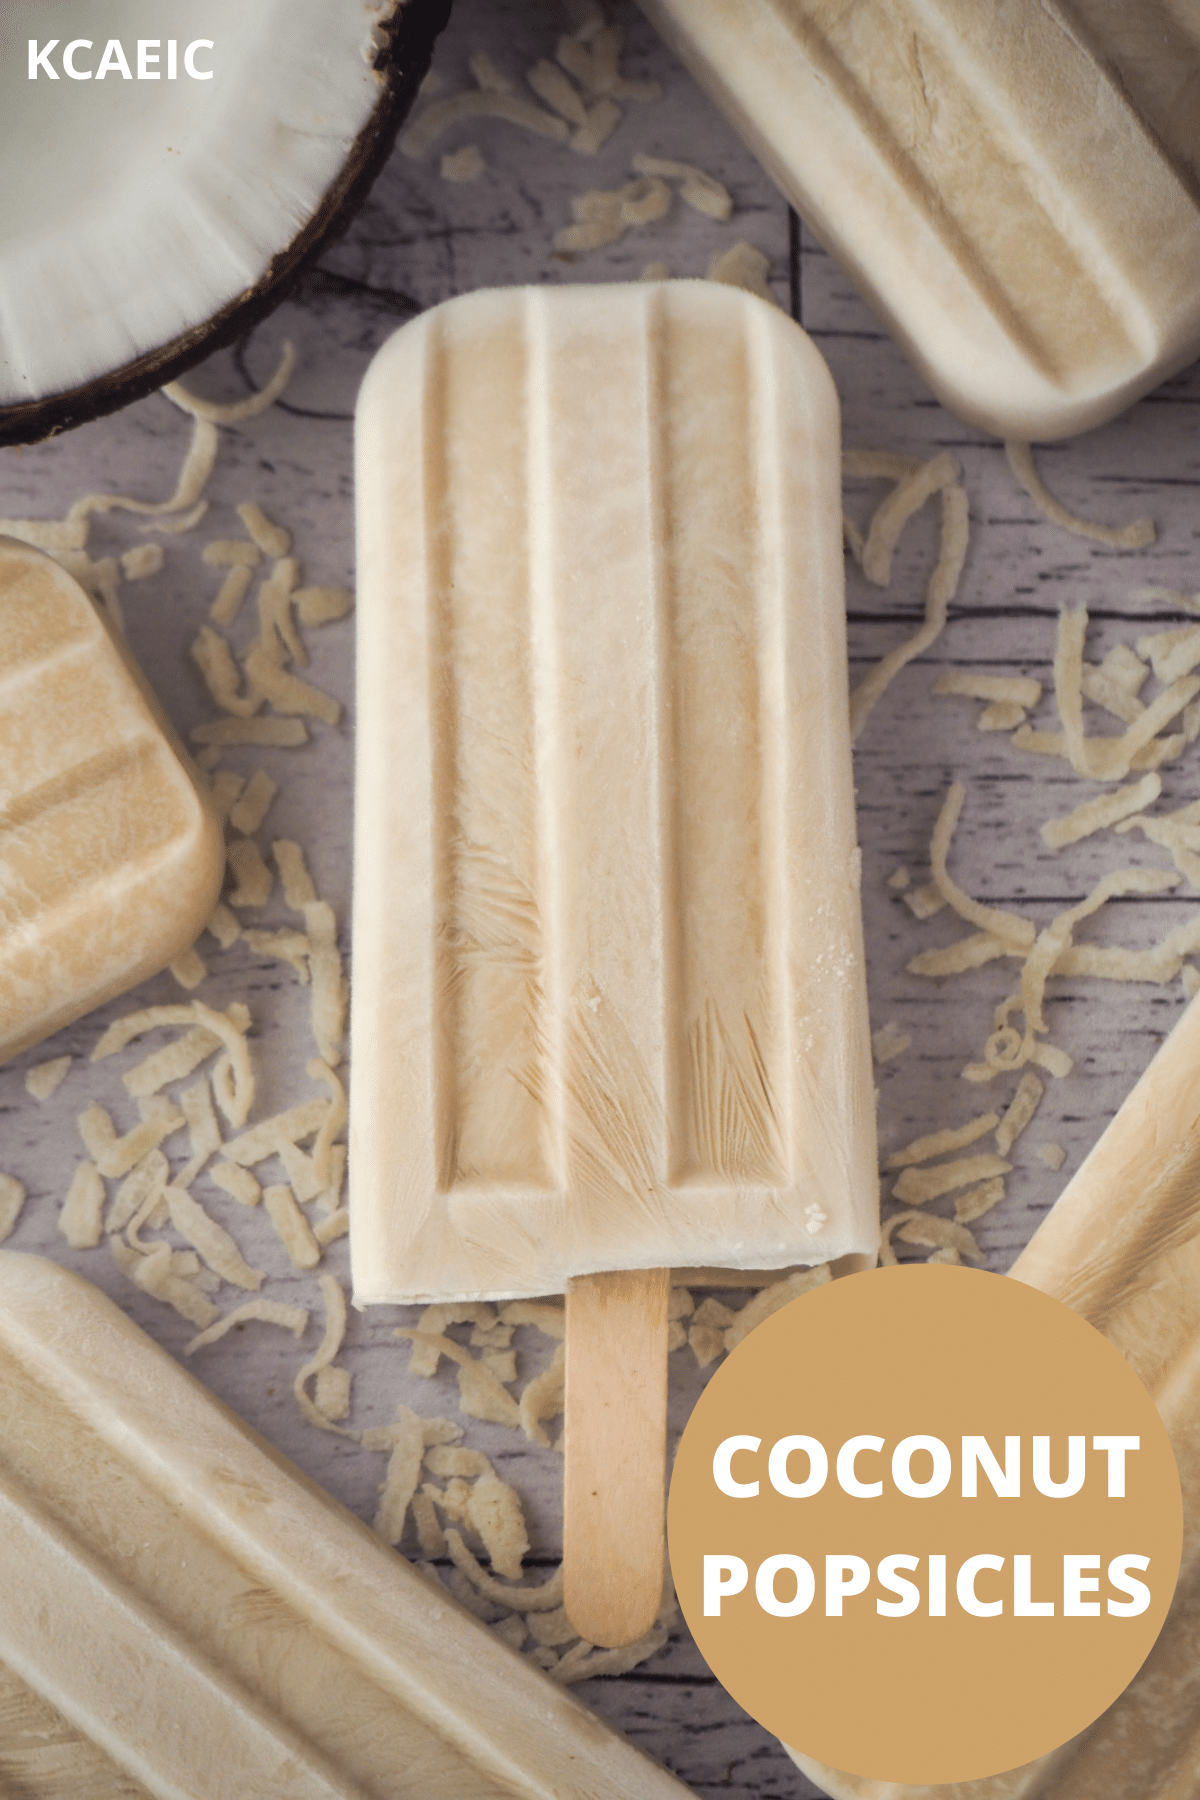 Coconut popsicles with fresh coconut and shredded coconut, with text overlay, Coconut popsicles, KCAEIC.